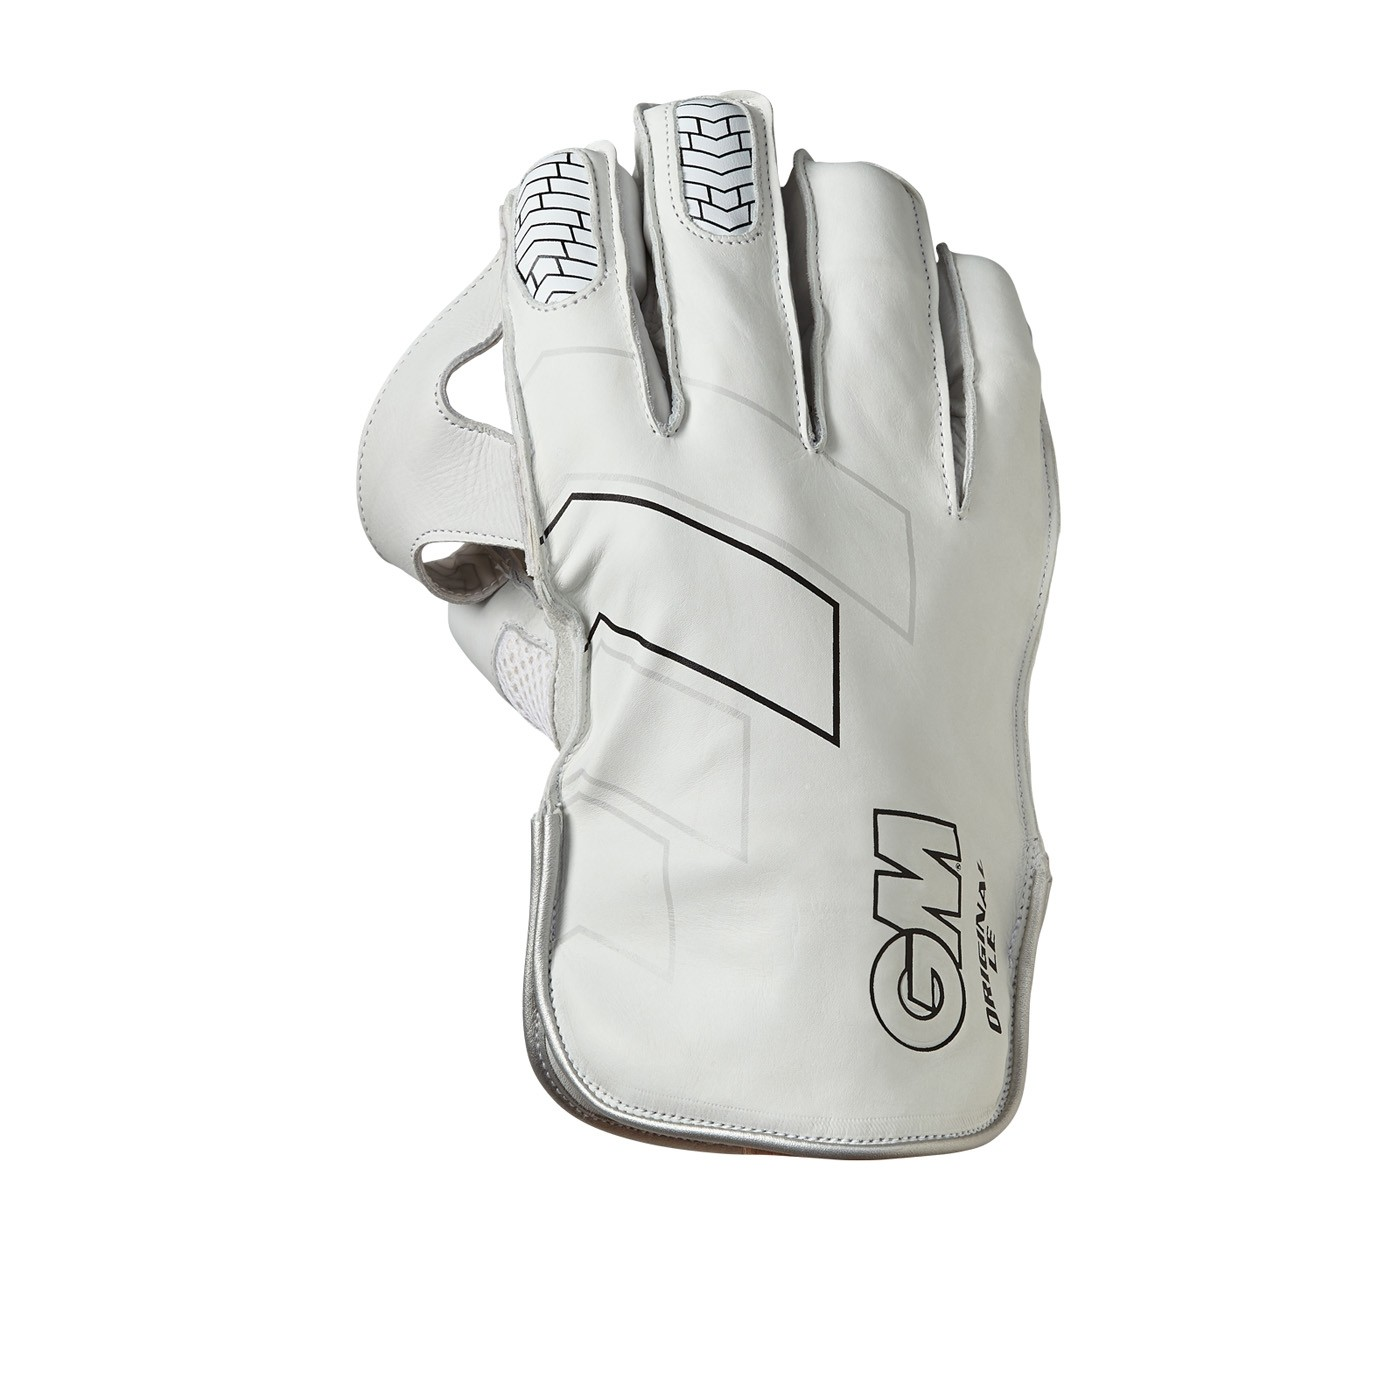 2021 Gunn and Moore Original Limited Edition Wicket Keeping Gloves